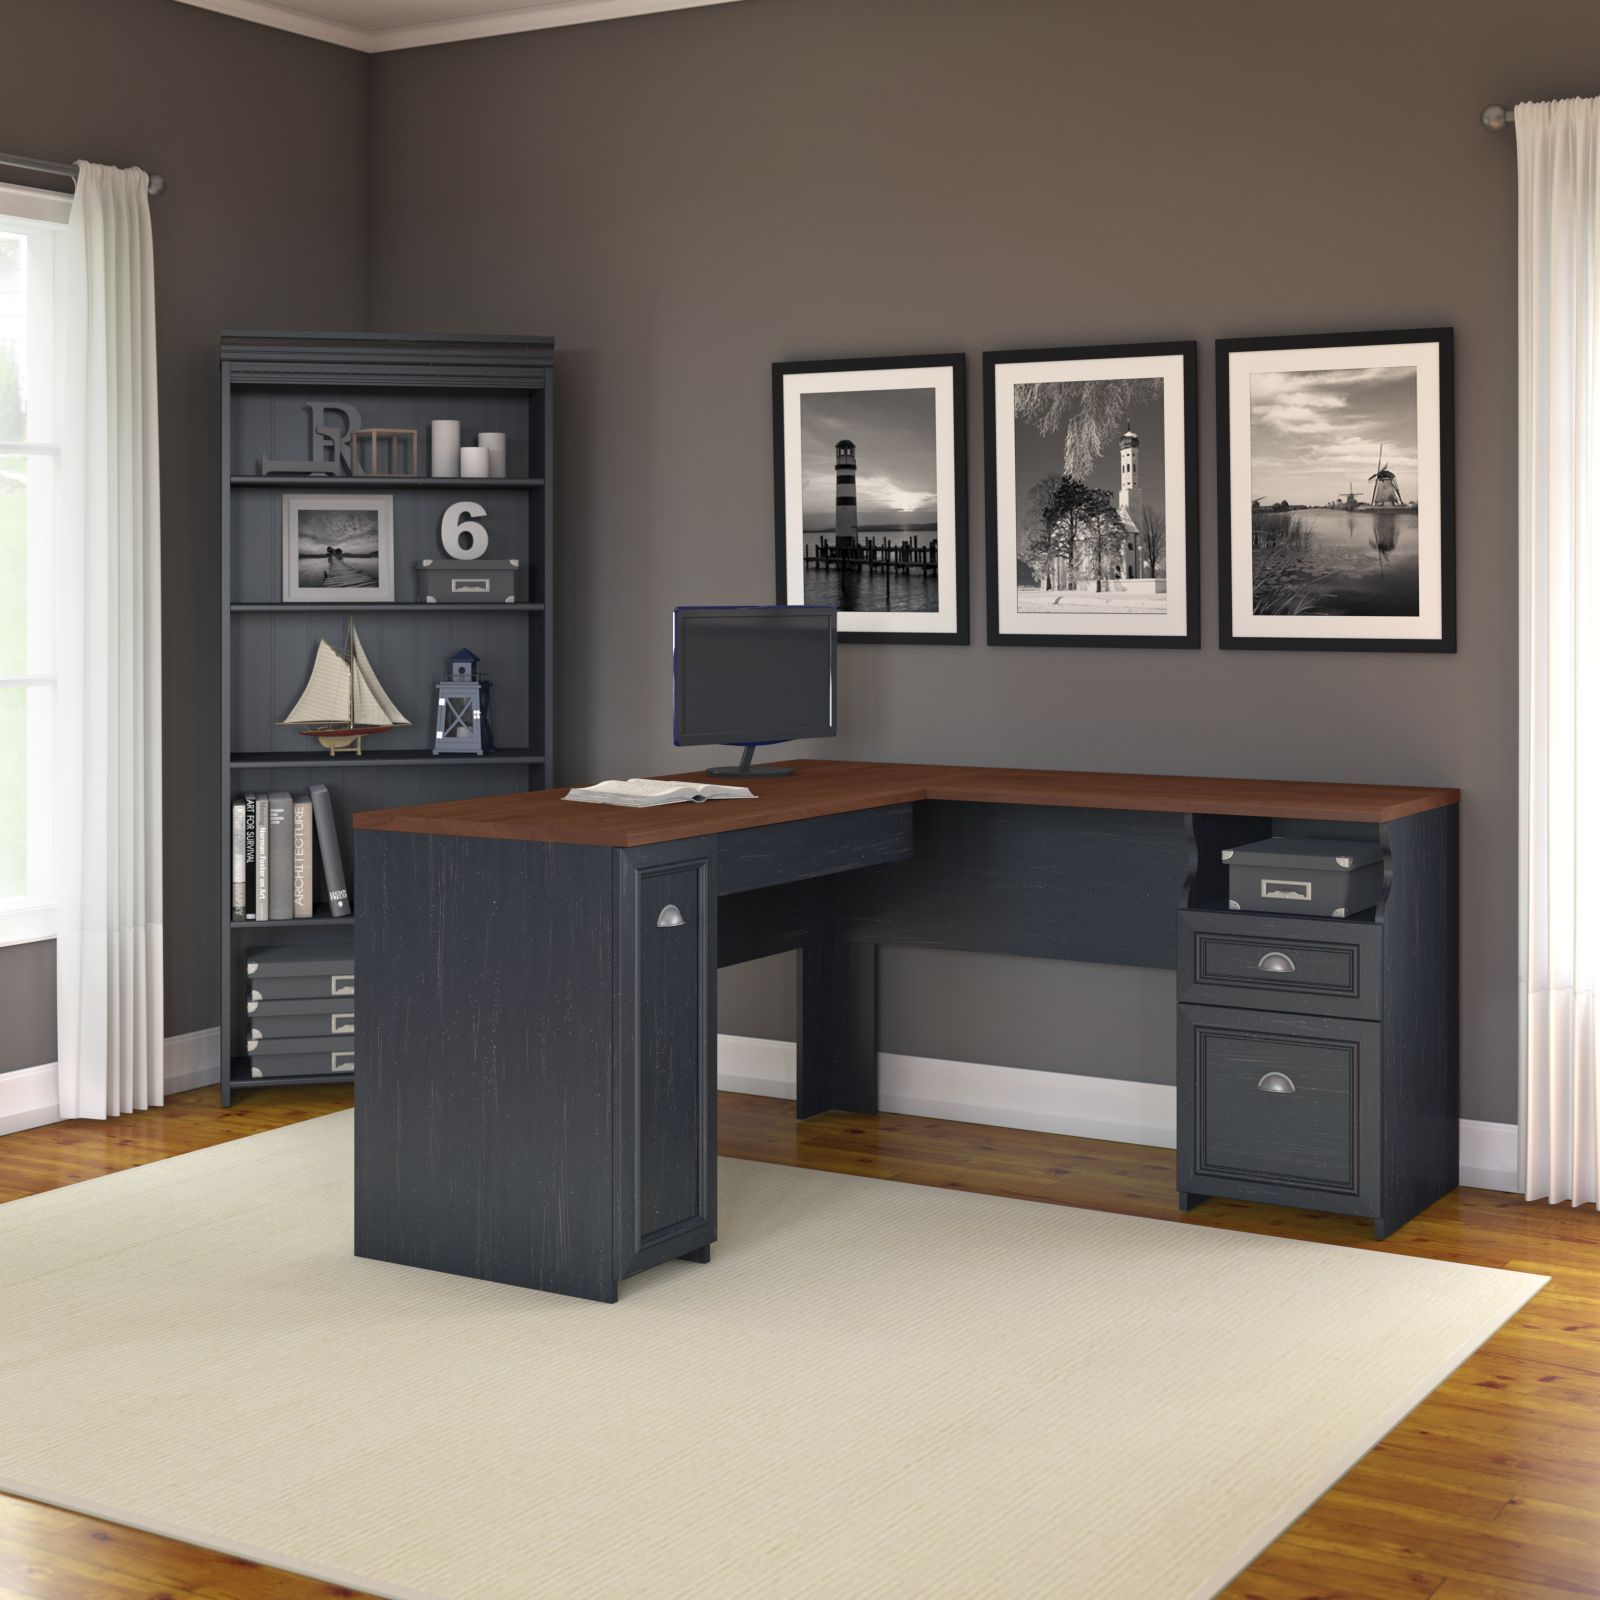 Bush furniture fairview l shaped desk with hutch and lateral file